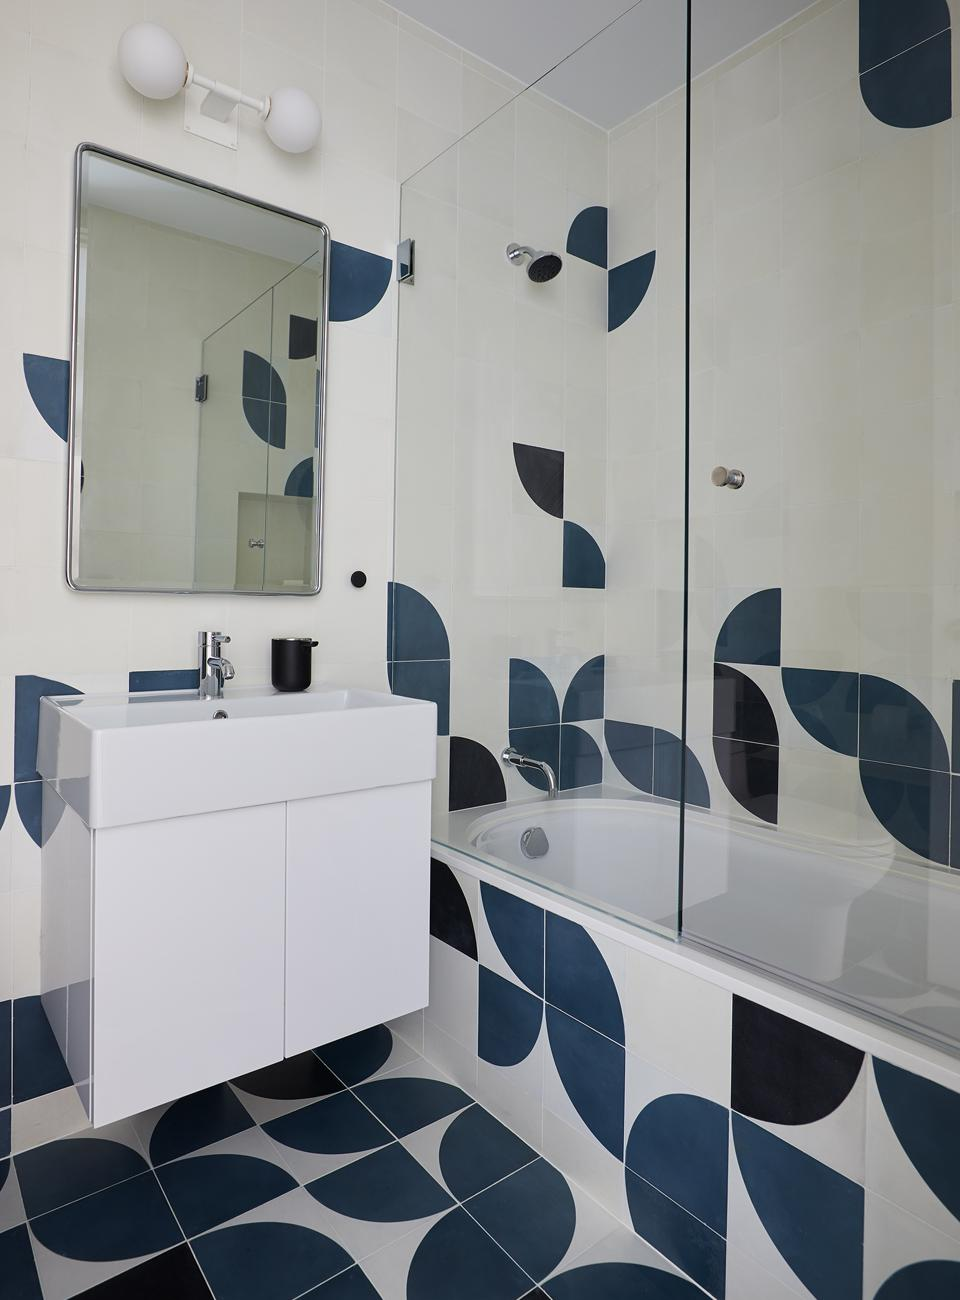 The guest bathroom features tiles from Clé Tile, and Bastion Light from Allied Maker.